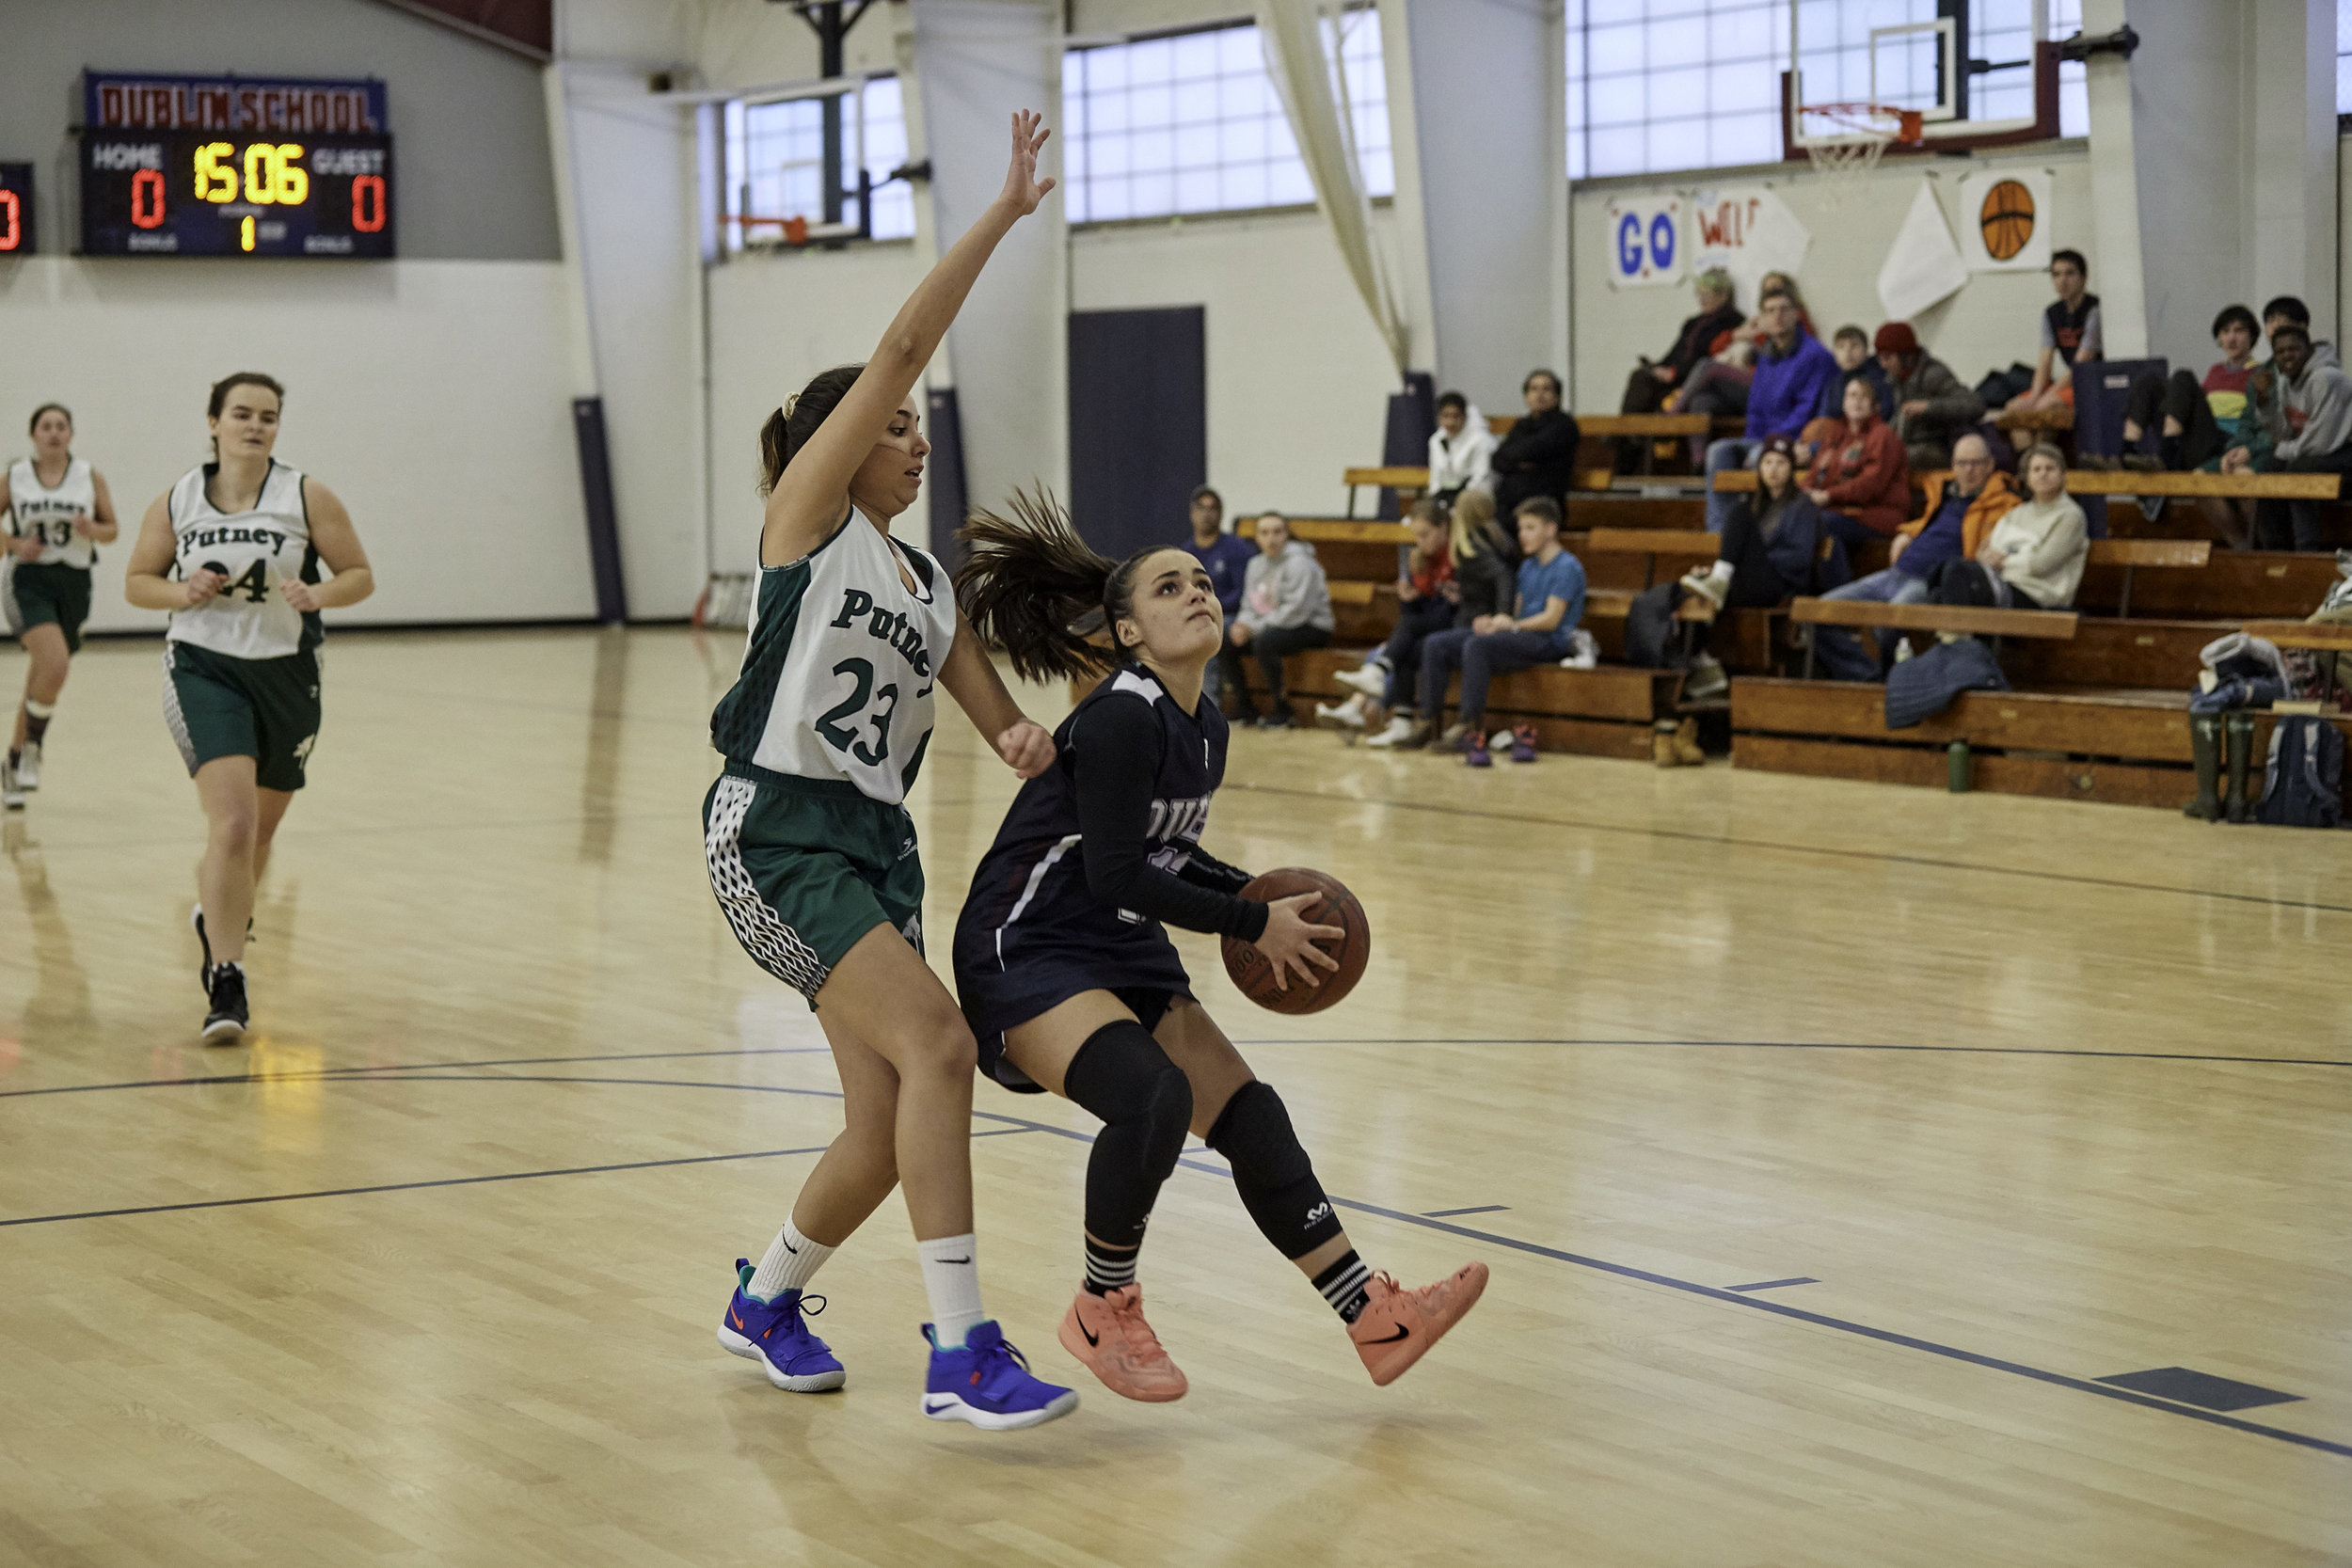 Basketball vs Putney School, February 9, 2019 - 167084.jpg